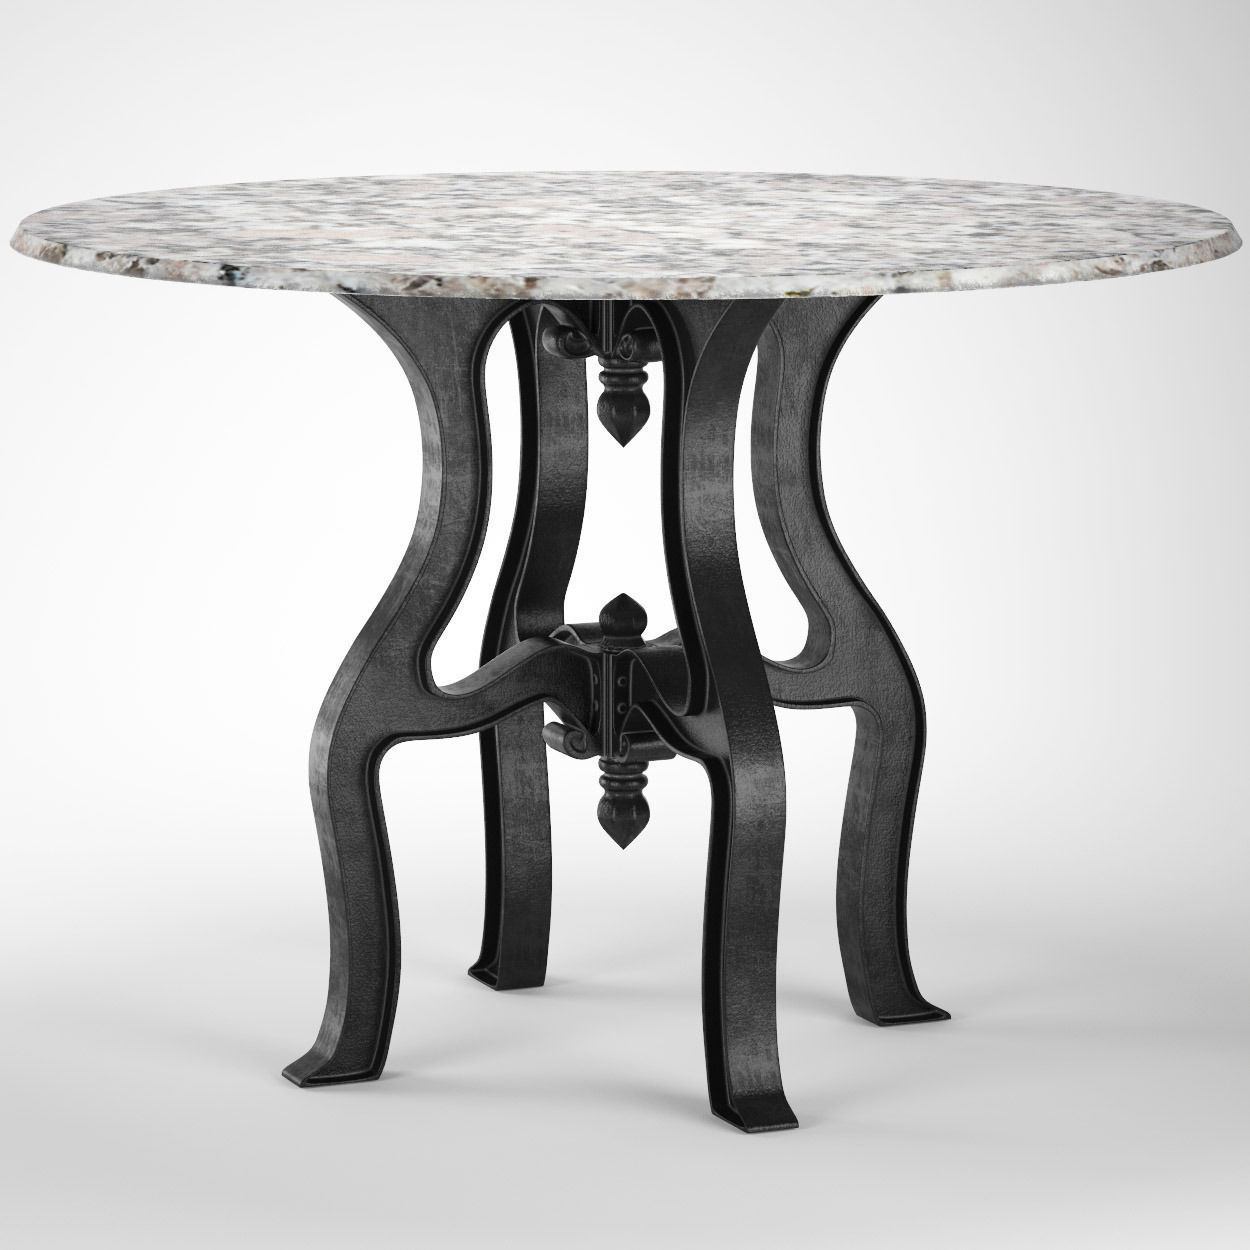 French Industrial White Marble Top Round Dining Table 3d